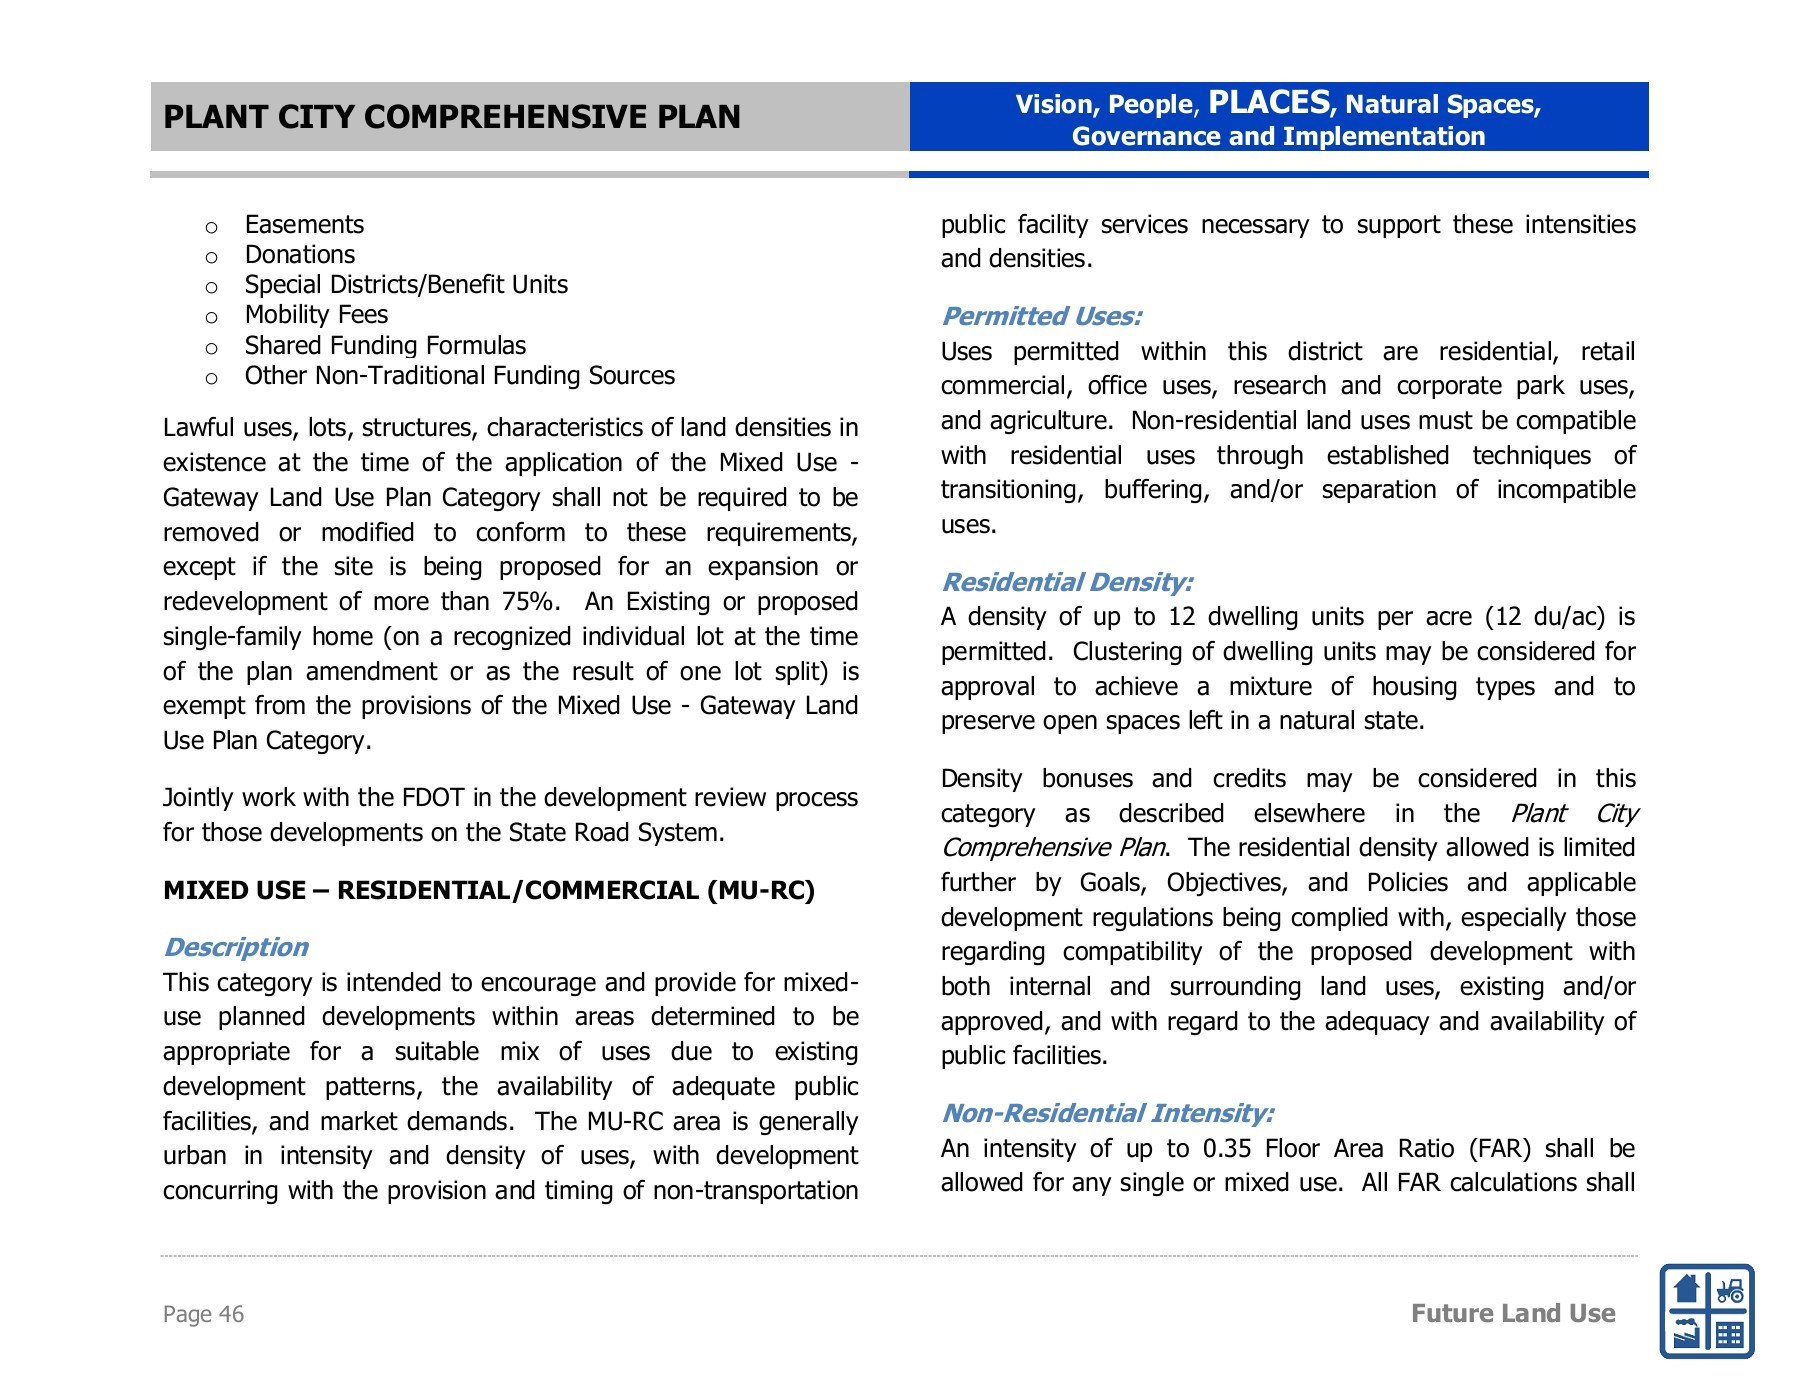 Zip Code for Macdill Afb Imagine 2040 Plant City Comprehensive Plan Pages 51 100 Text